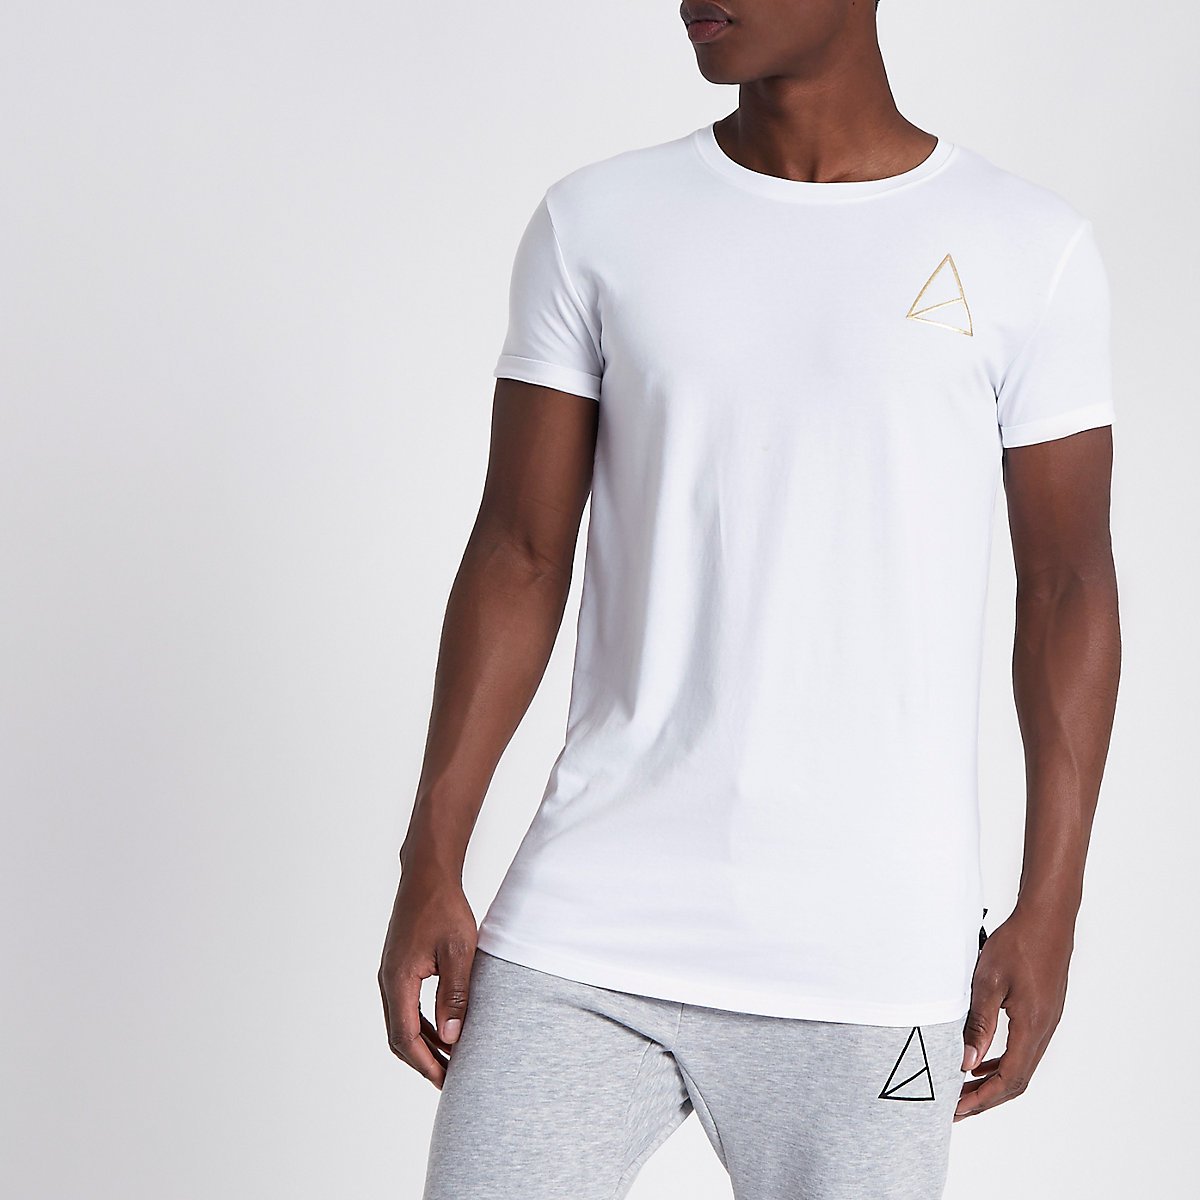 Golden Equation white muscle fit T-shirt